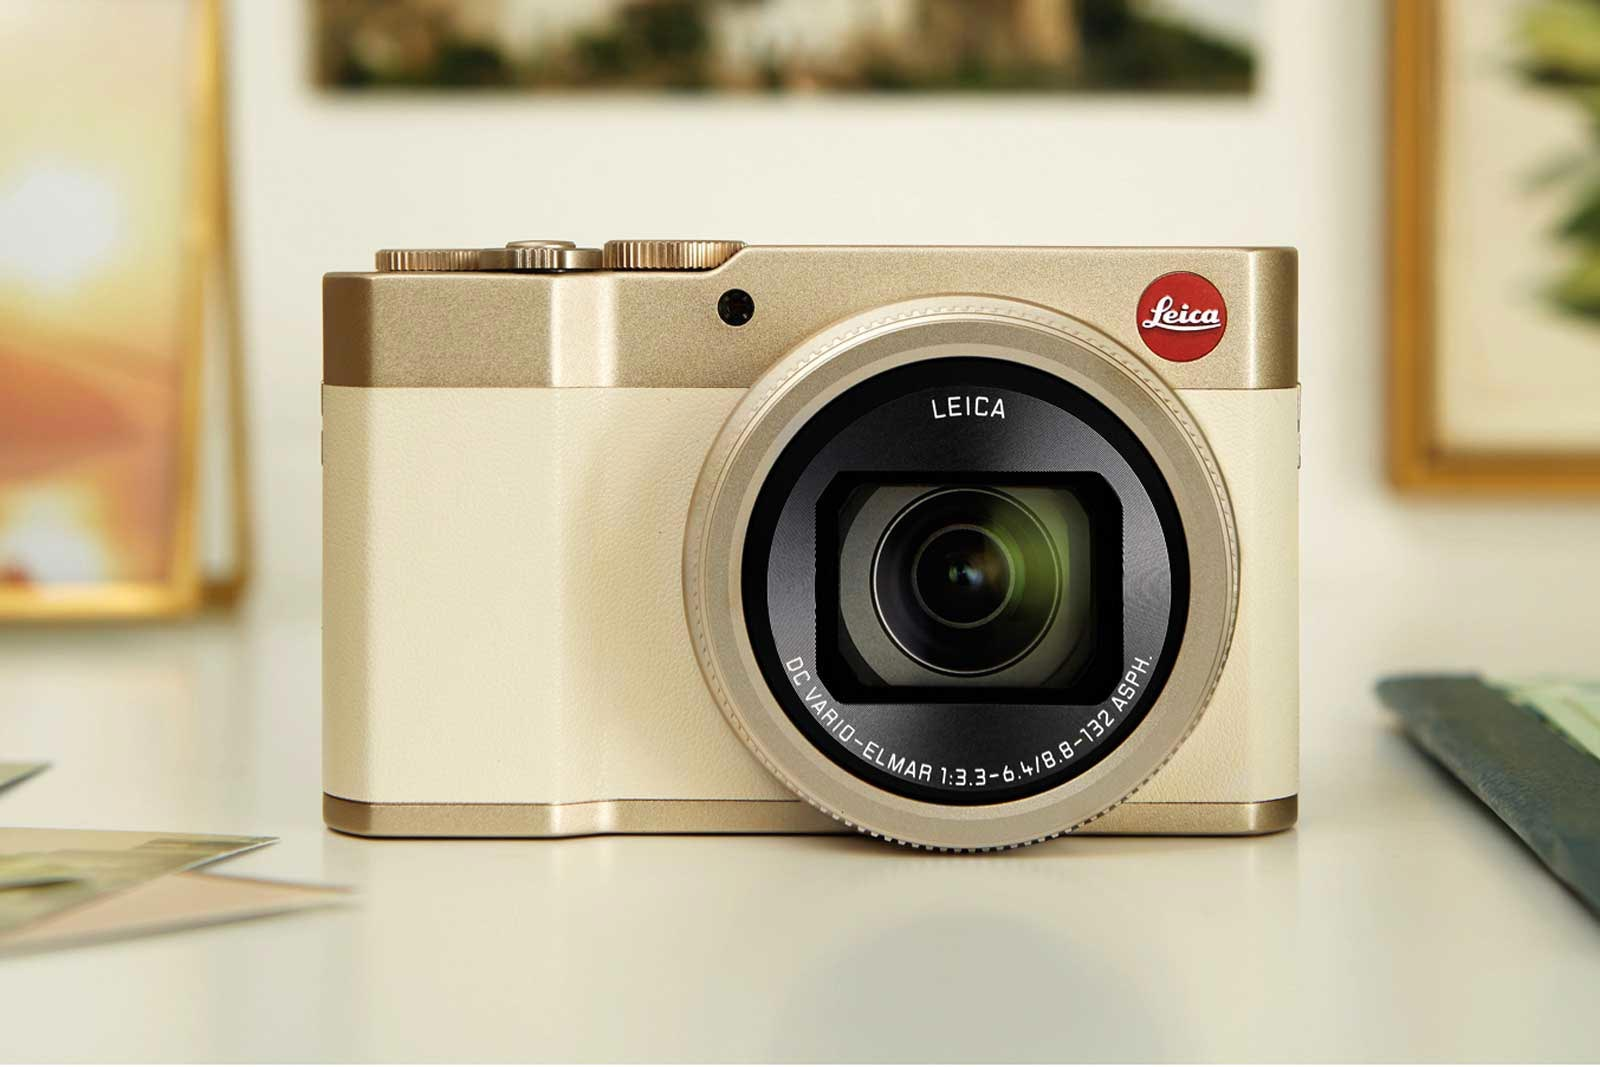 Putting the NEW Leica C-Lux to test under Low Light Conditions